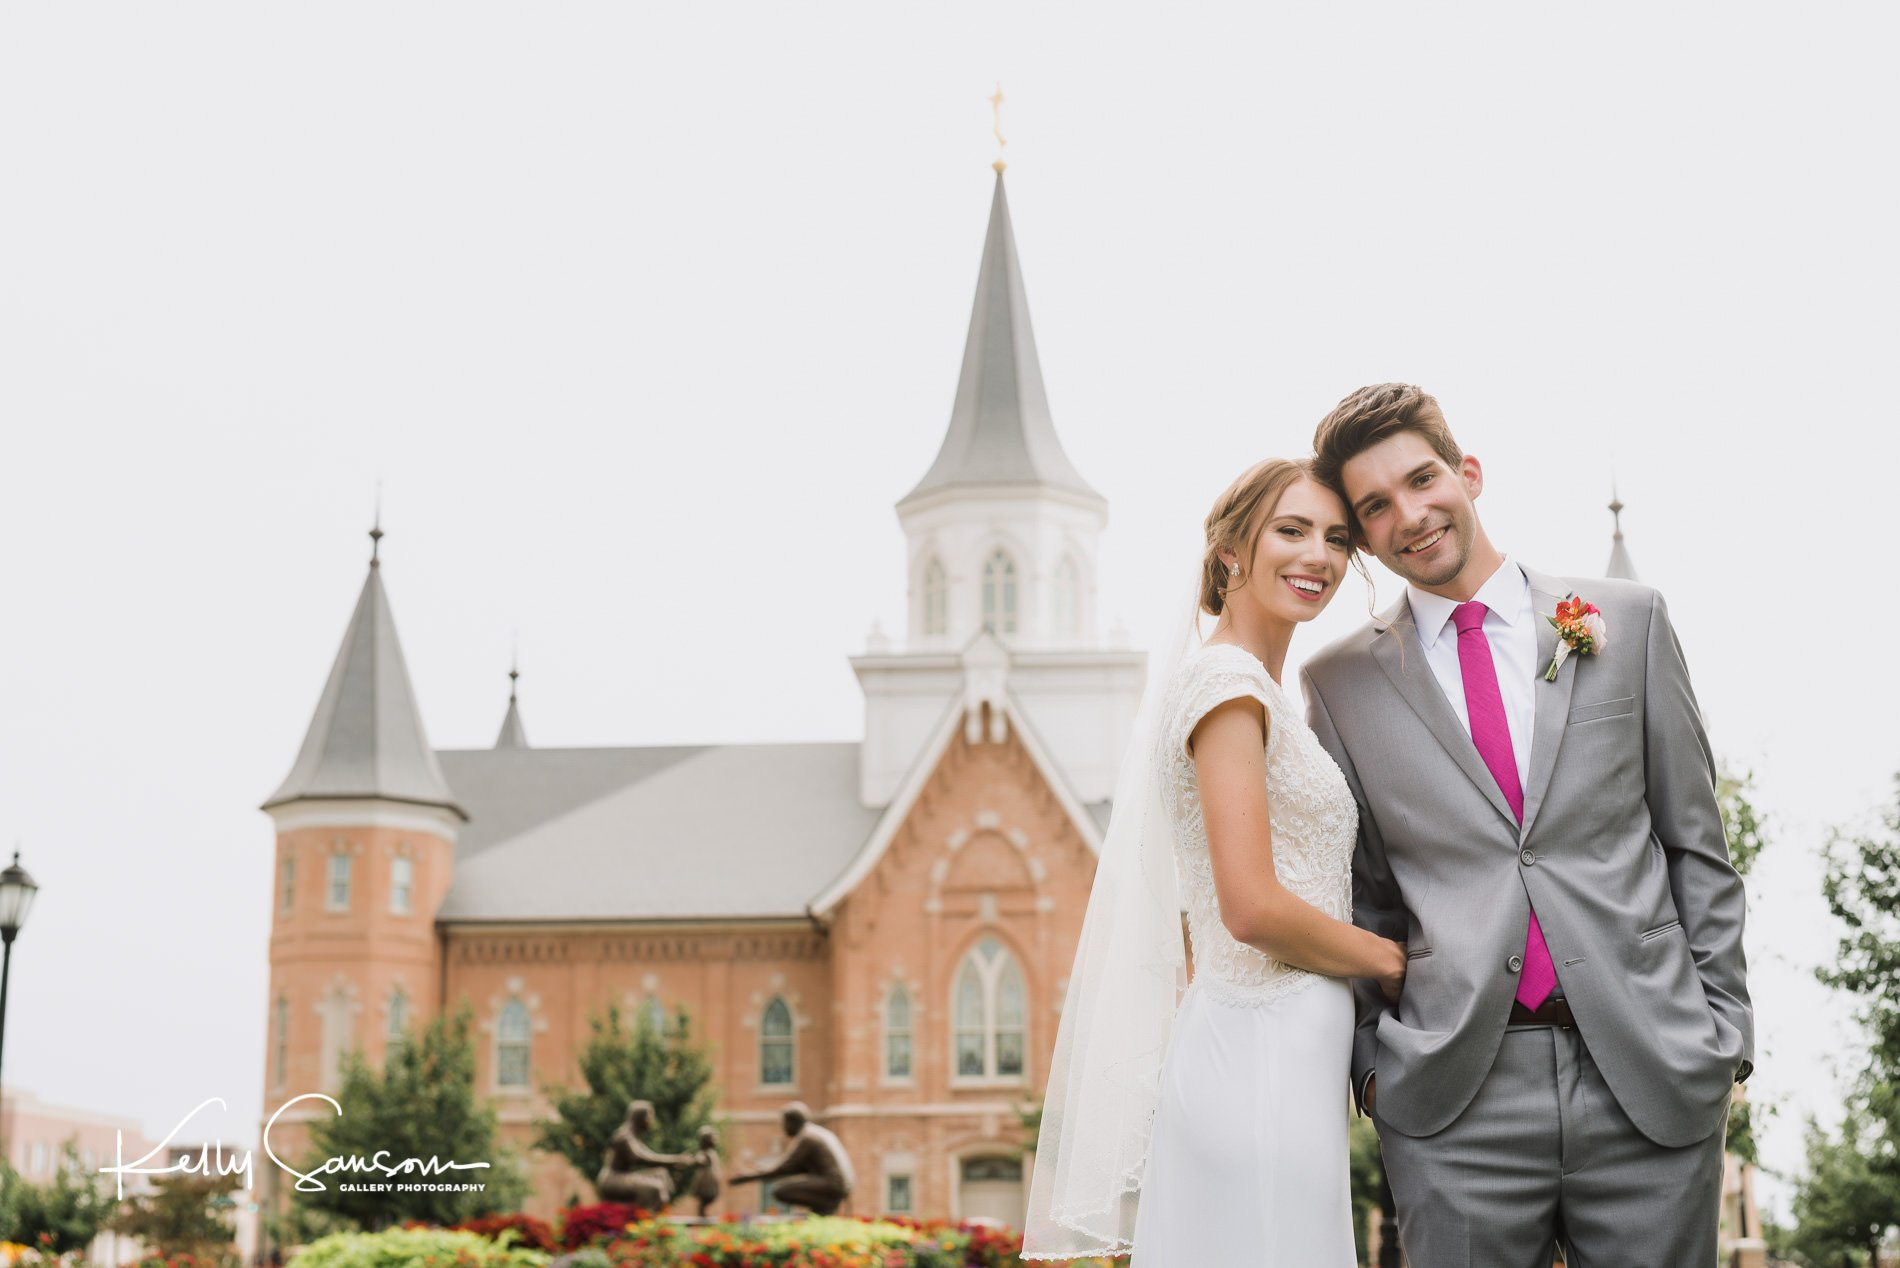 Bride and groom touching heads together looking at camera for wedding photography at provo city center lds temple.